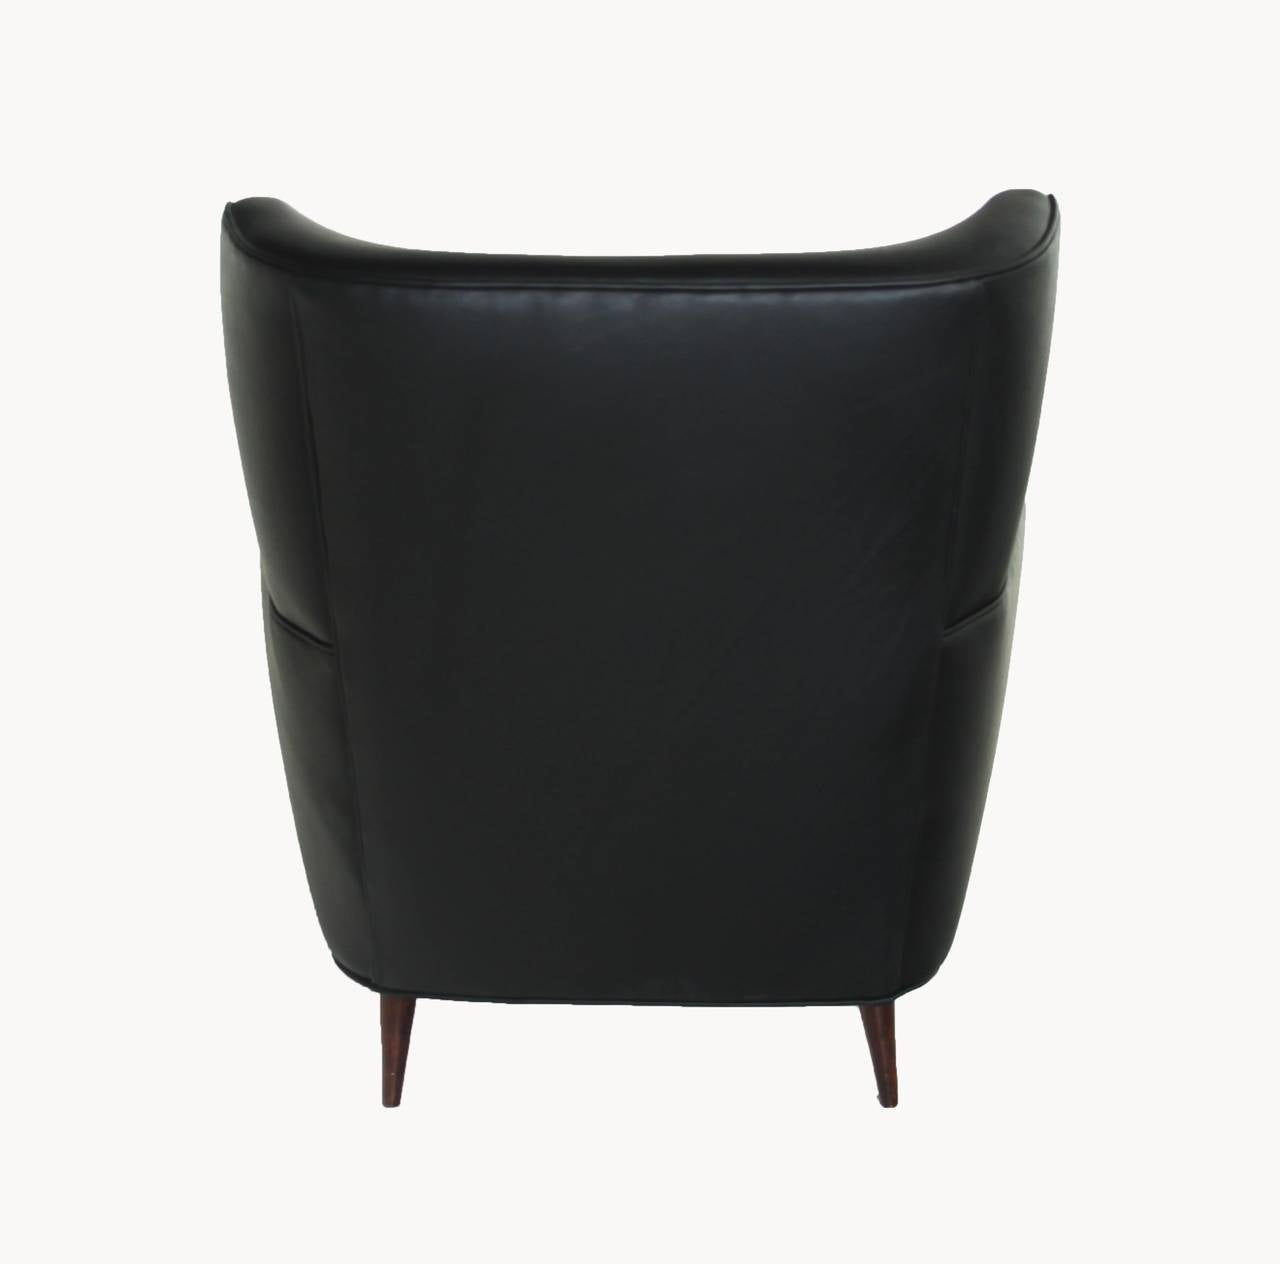 Mid-20th Century  Black Leather Armchair Club Chair with Lathed Wood Legs by Joaquim Tenreiro For Sale